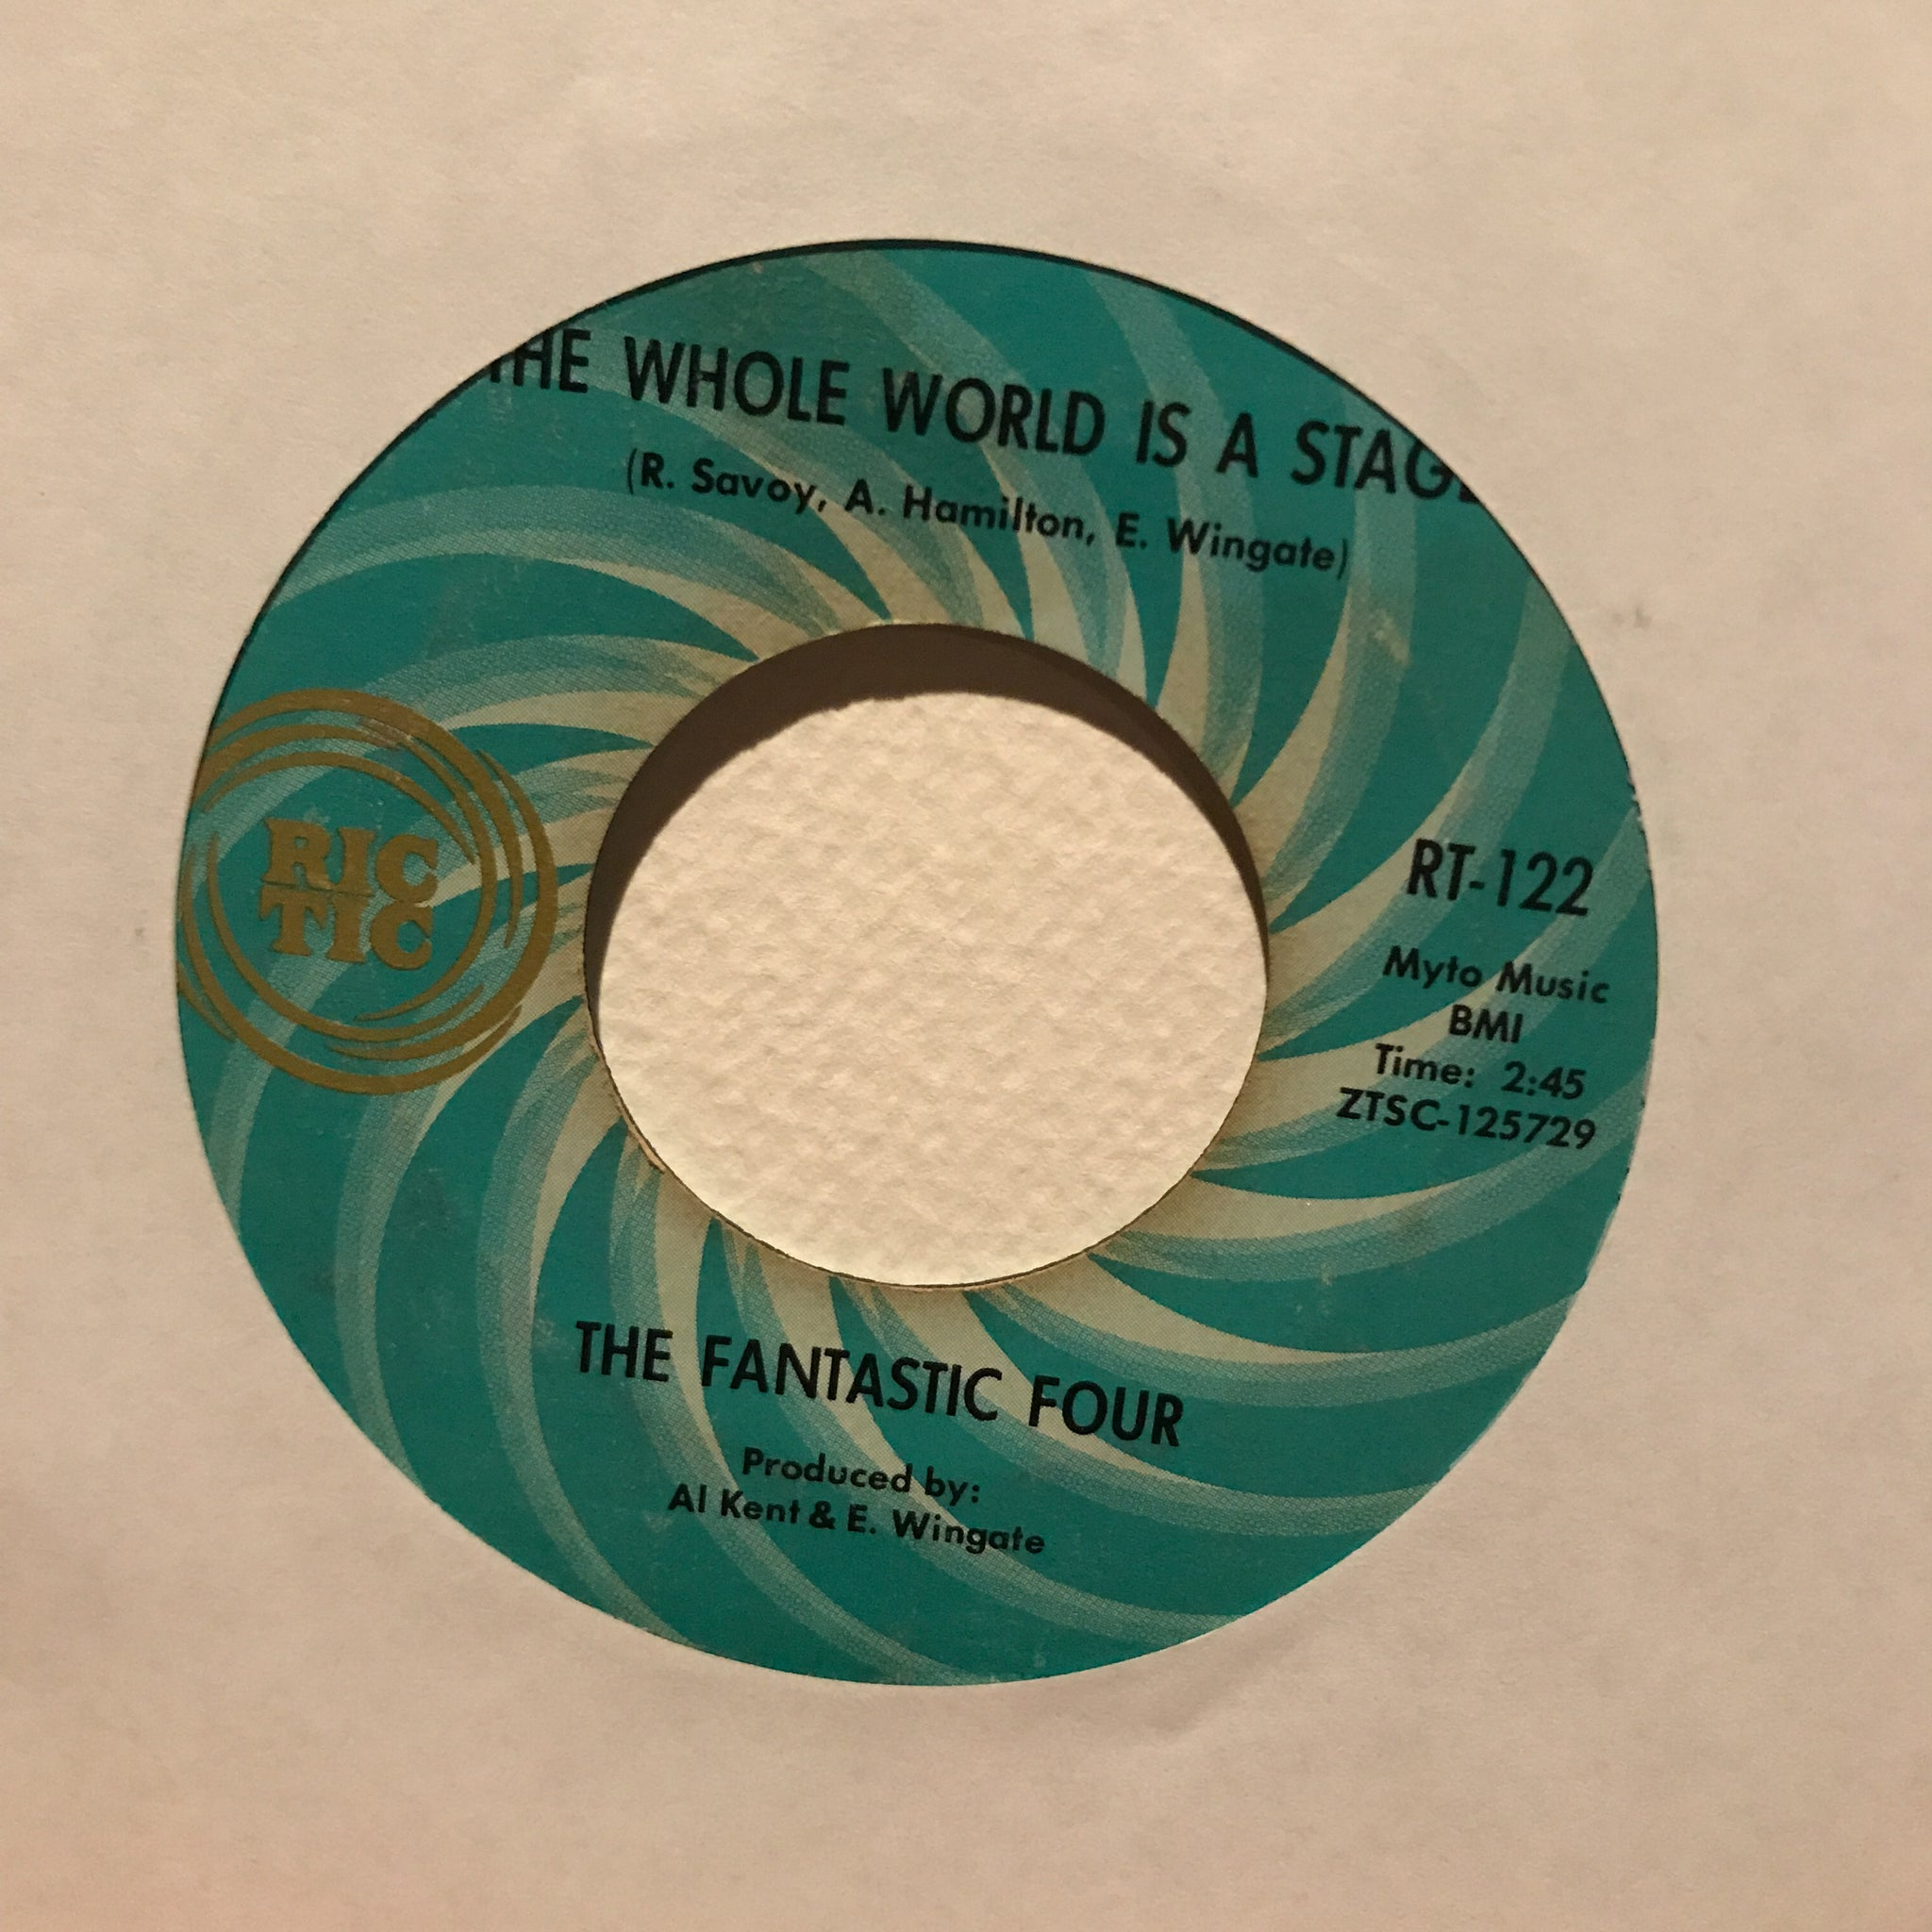 The Fantastic Four ‎– The Whole World Is A Stage / Ain't Love Wonderful